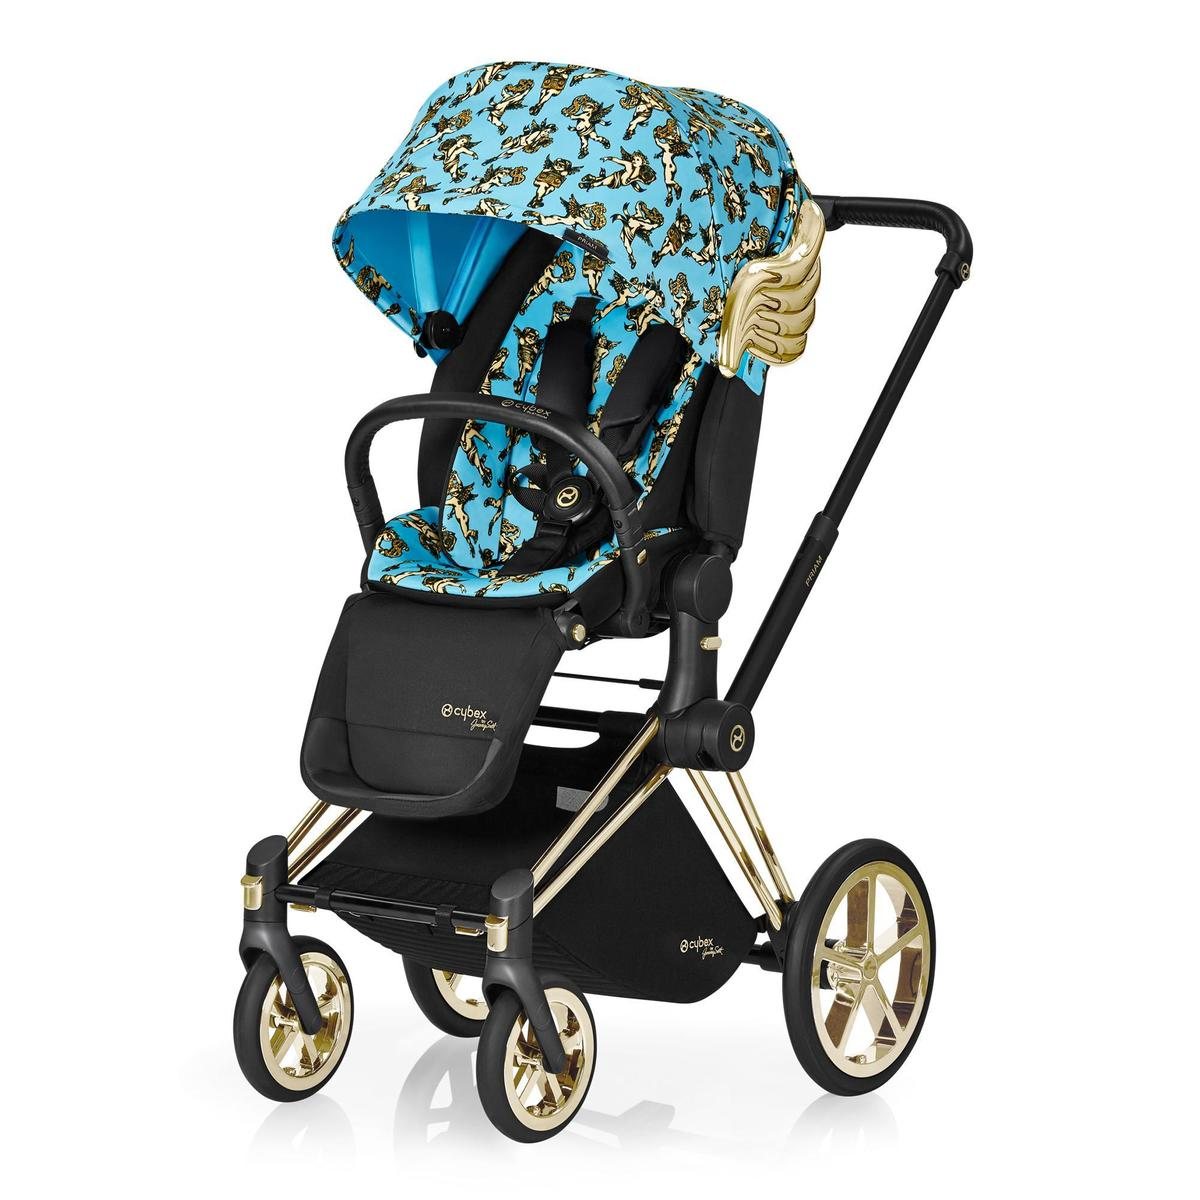 Cybex by Jeremy Scott Cherubs推車〈座椅與車架〉。NT$82,000